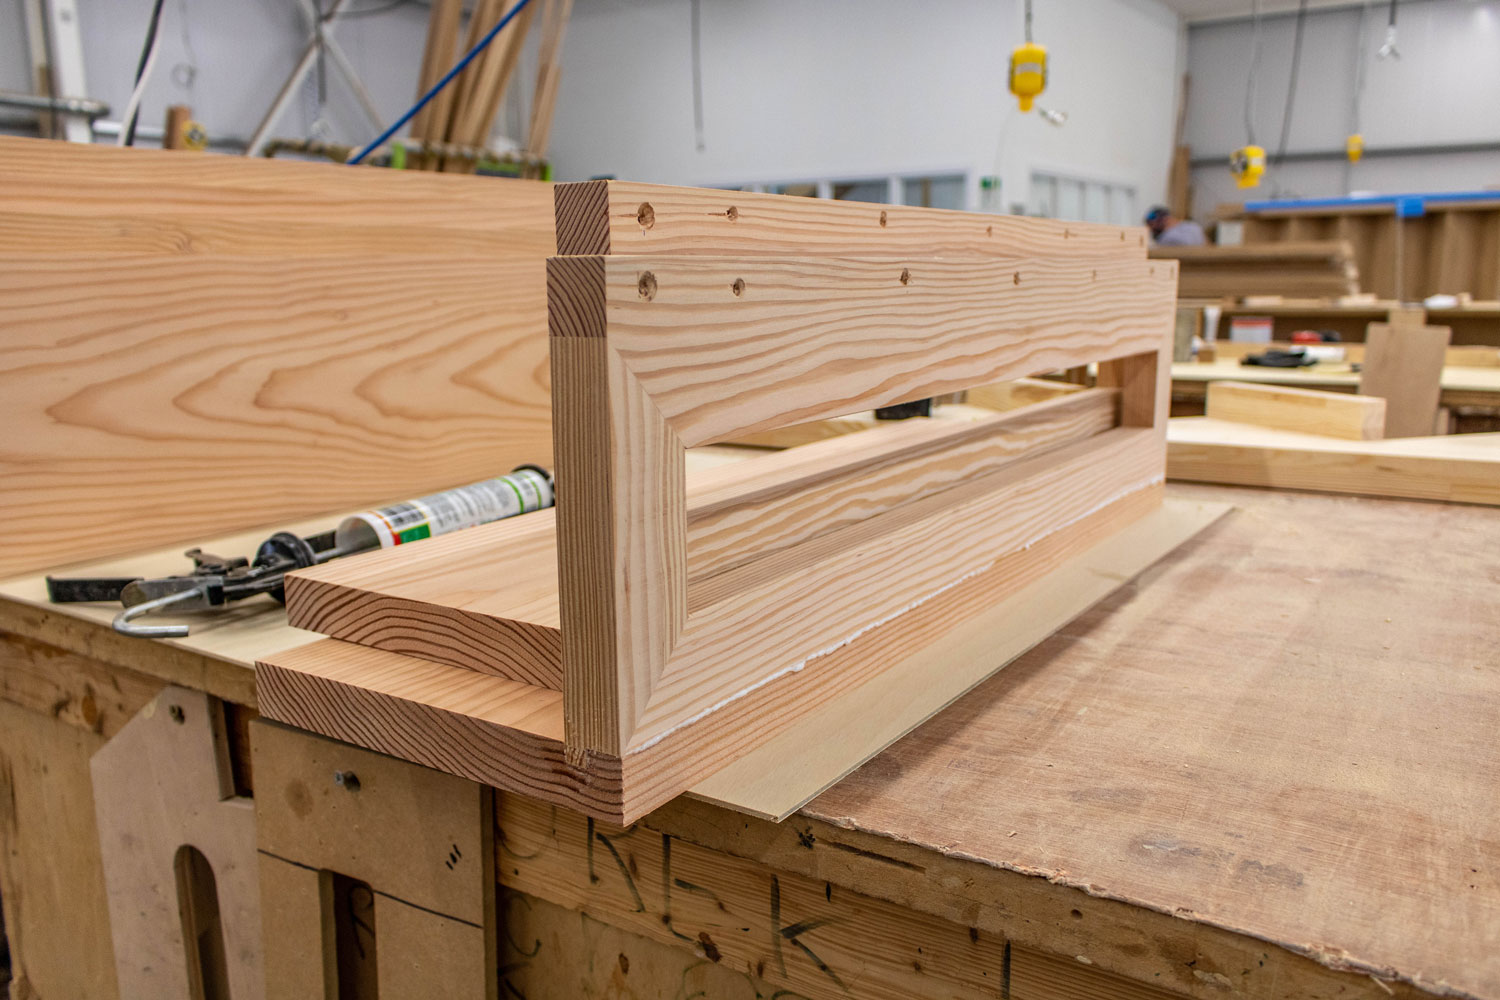 wood sections joined together